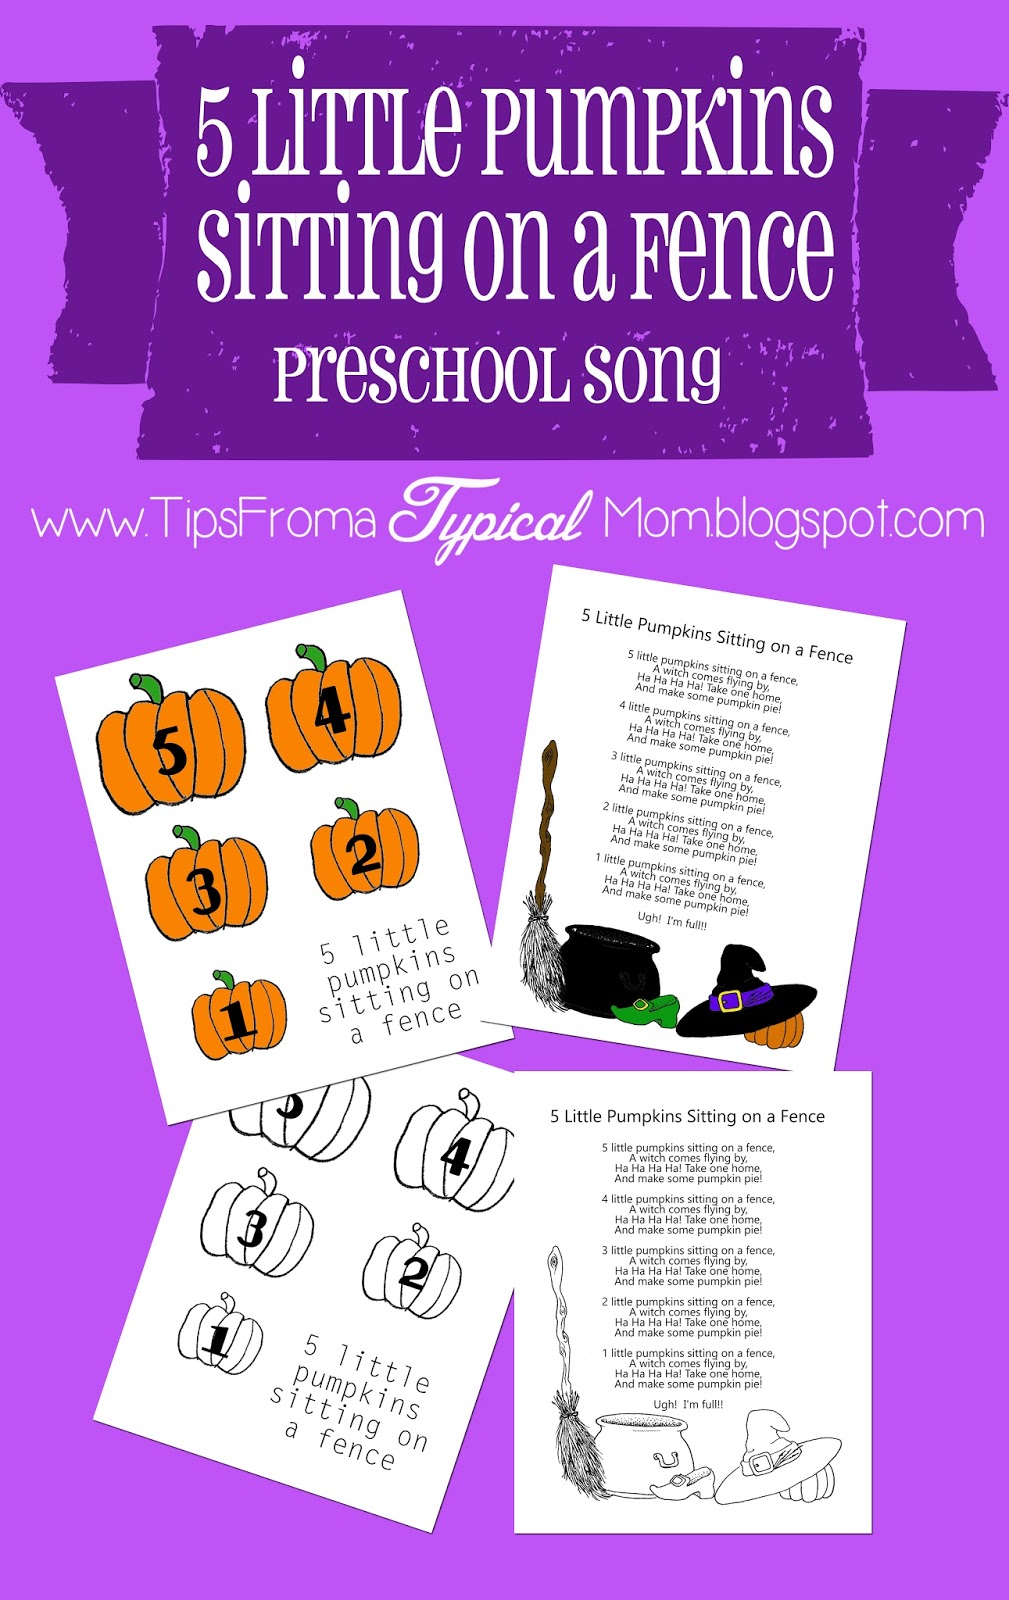 picture about 5 Little Pumpkins Printable titled 5 Small Pumpkins Sitting down upon a Fence Preschool Tune obtain